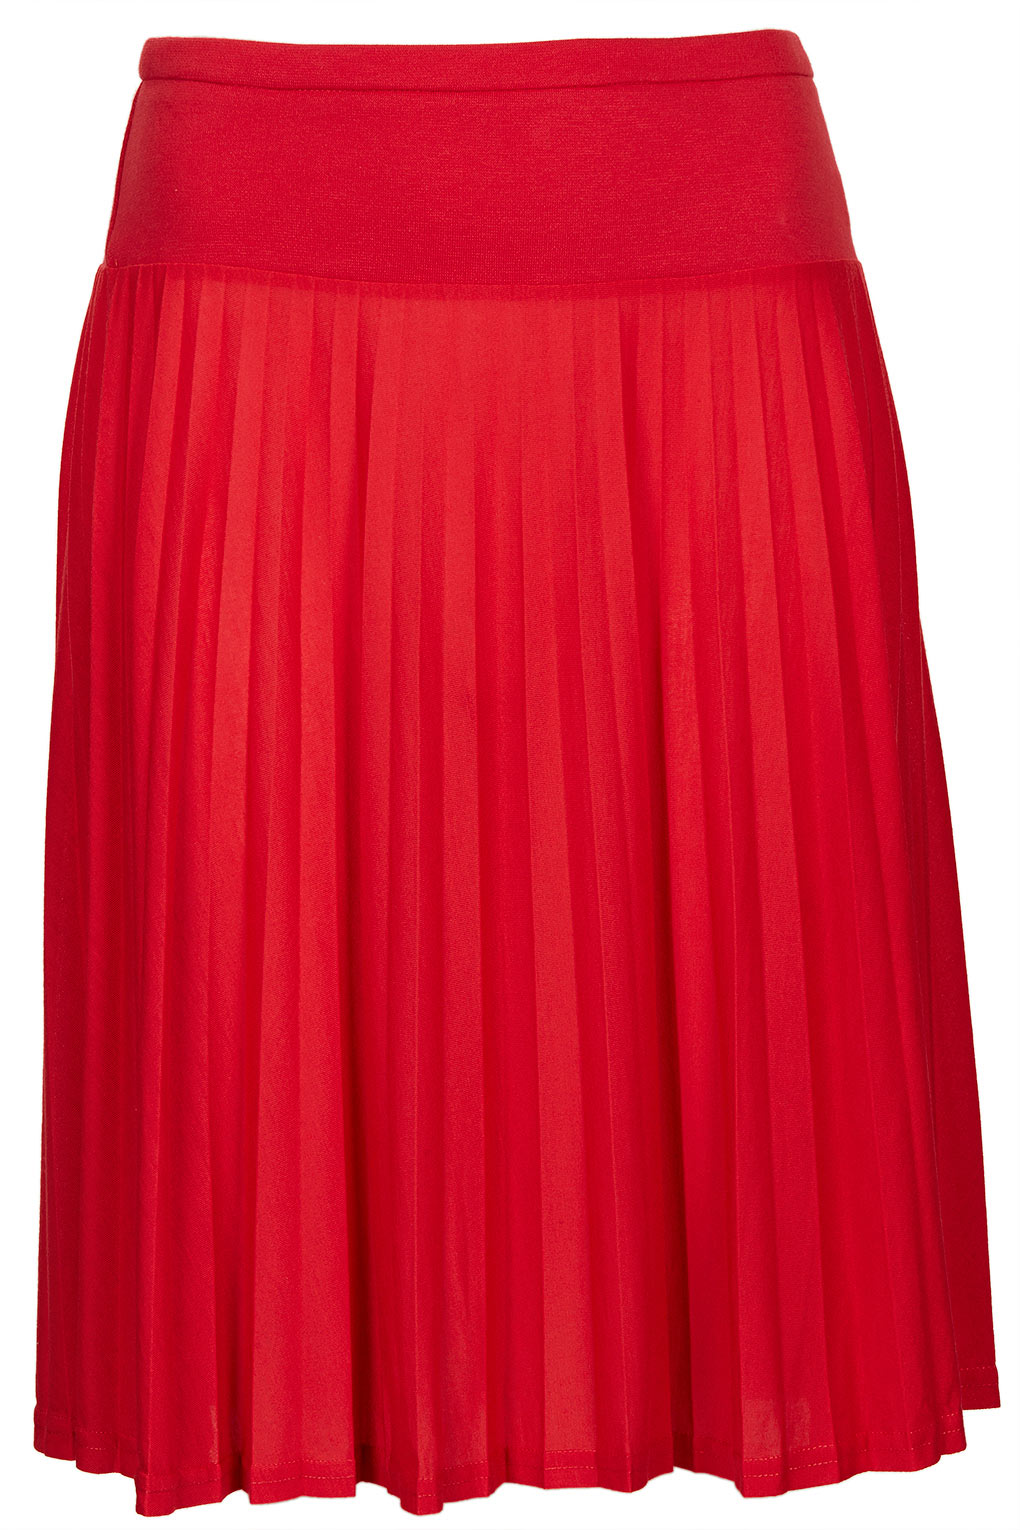 The Rise of the Midi Skirt—Ways to Work Mid-Length Skirts